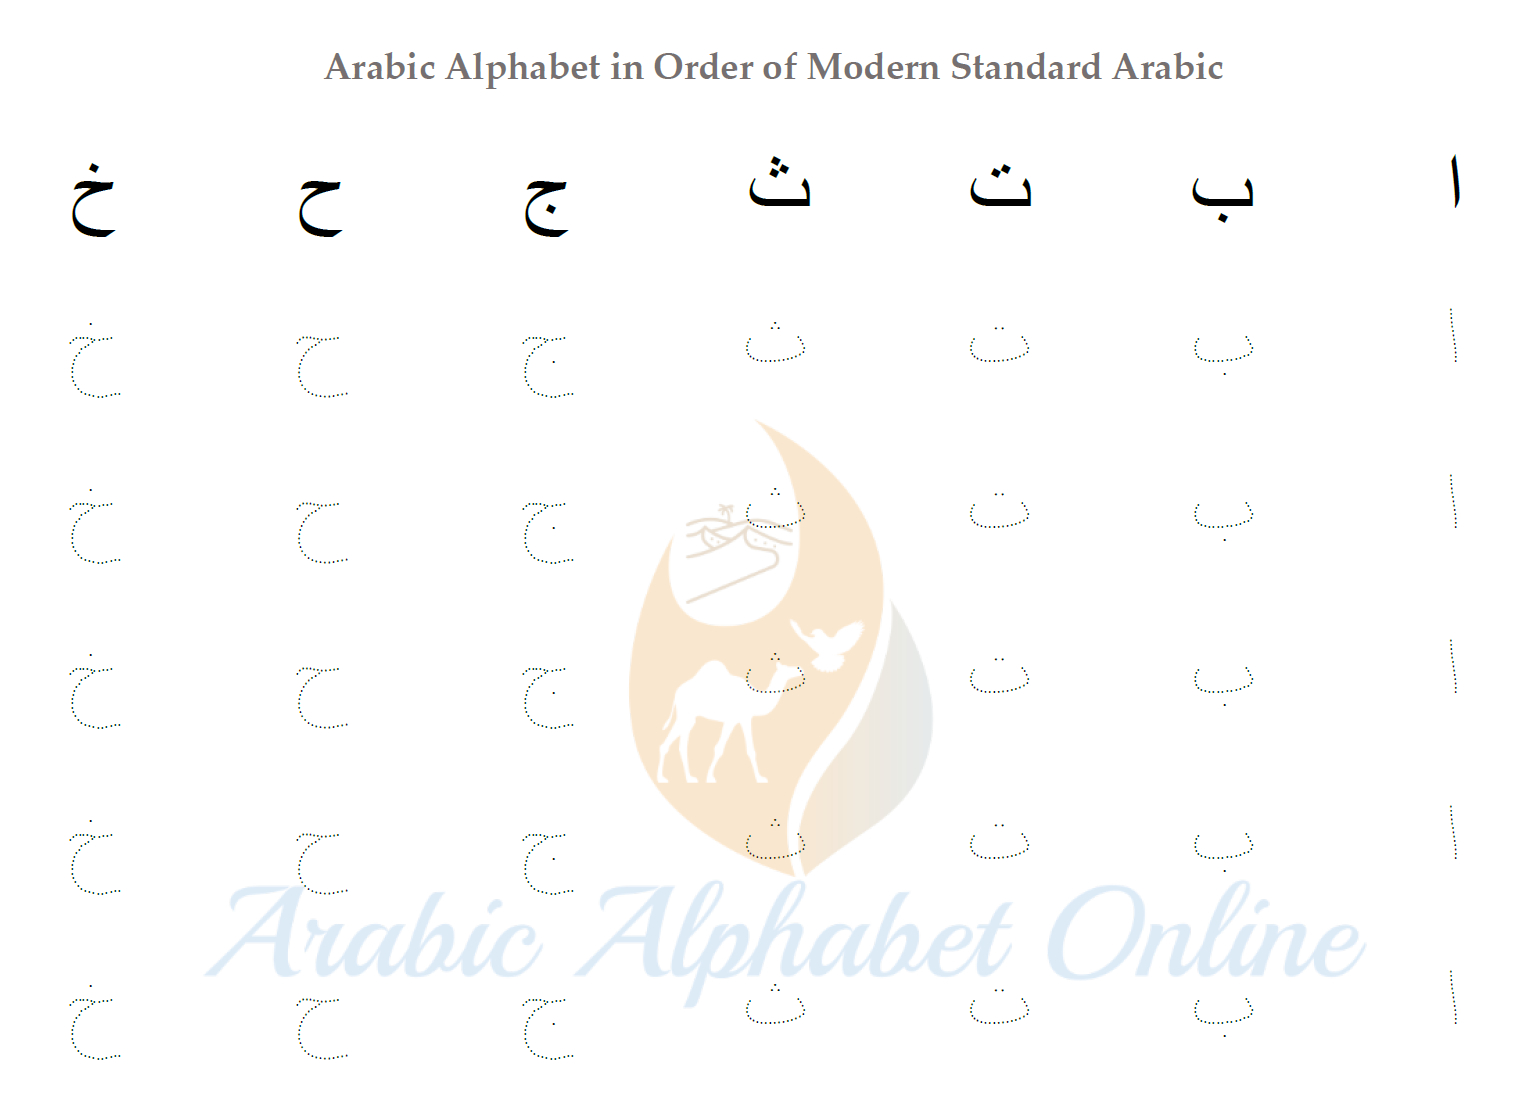 Arabic Alphabet Tracing Worksheets - Arabic Alphabet Online regarding Alphabet Tracing Online